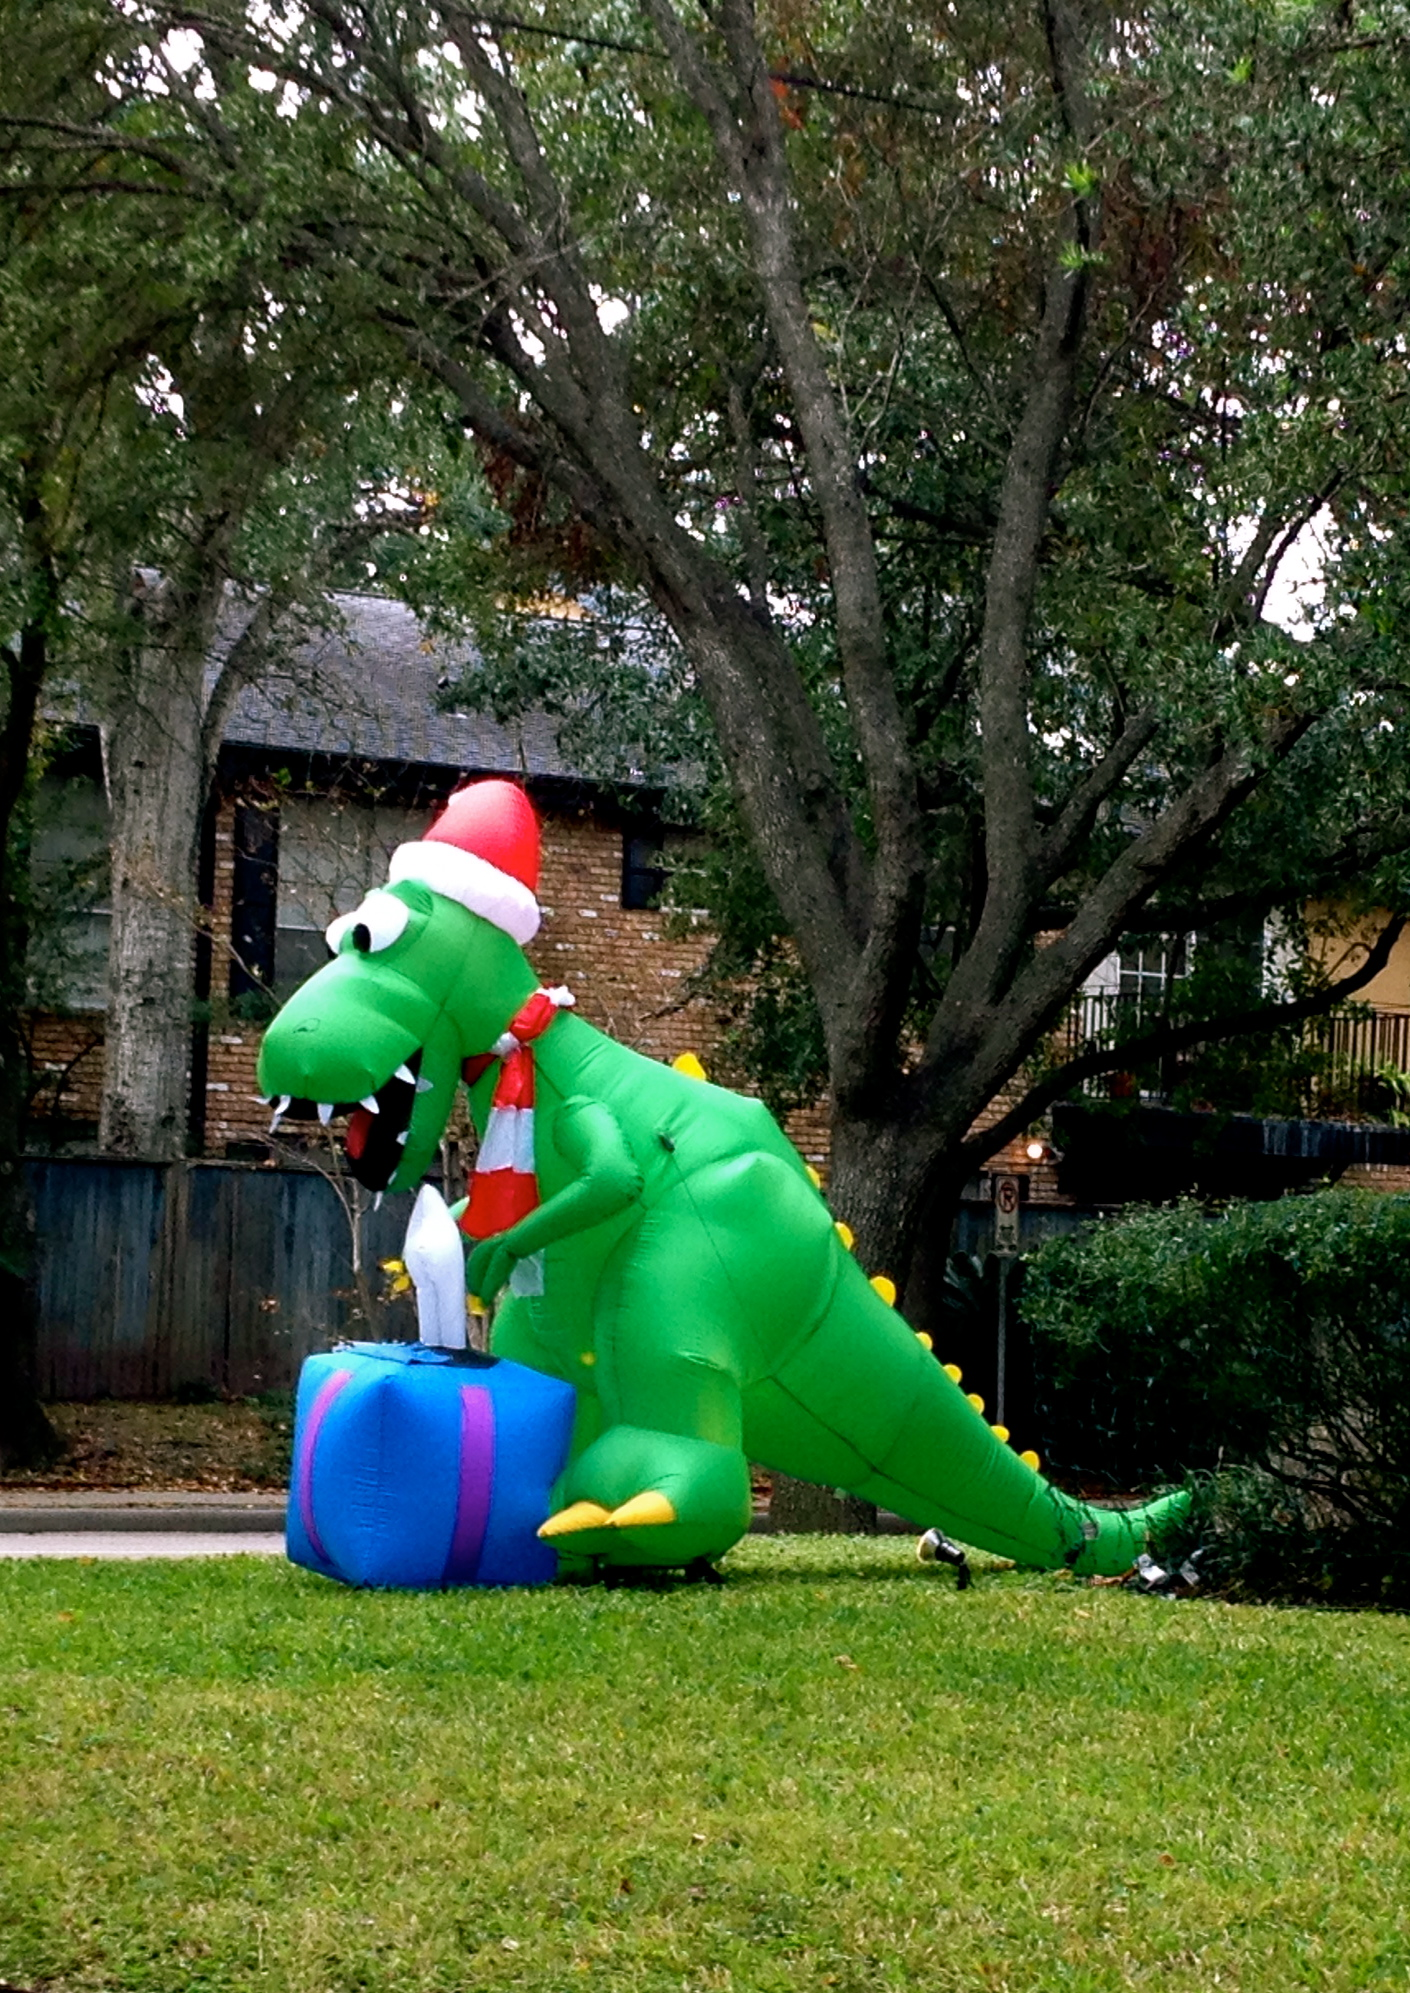 dinosaur christmas inflatable yard decoration - Dinosaur Christmas Decorations